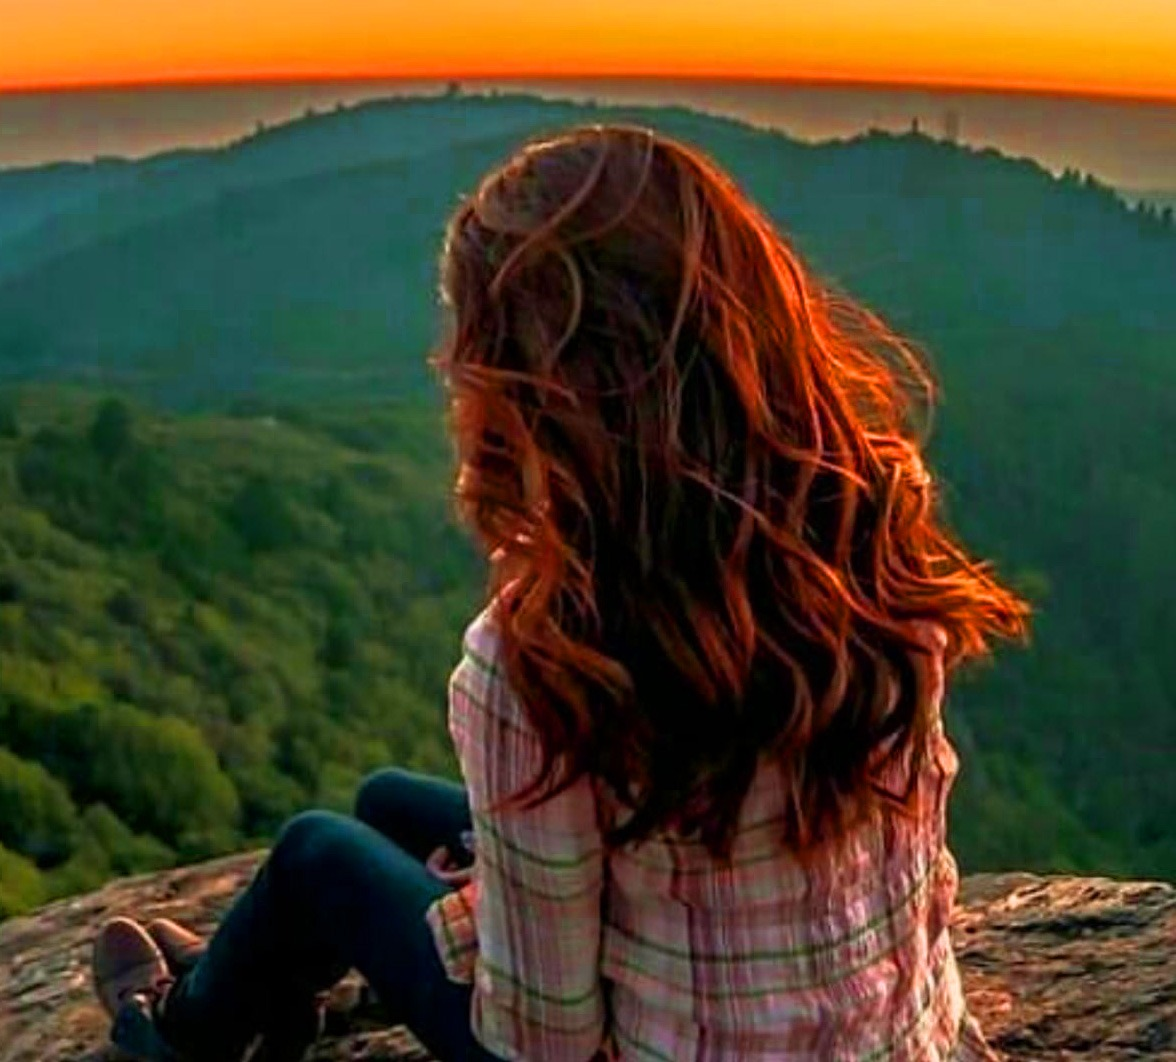 Sad Girl Whatsapp Dp Images pictures free hd